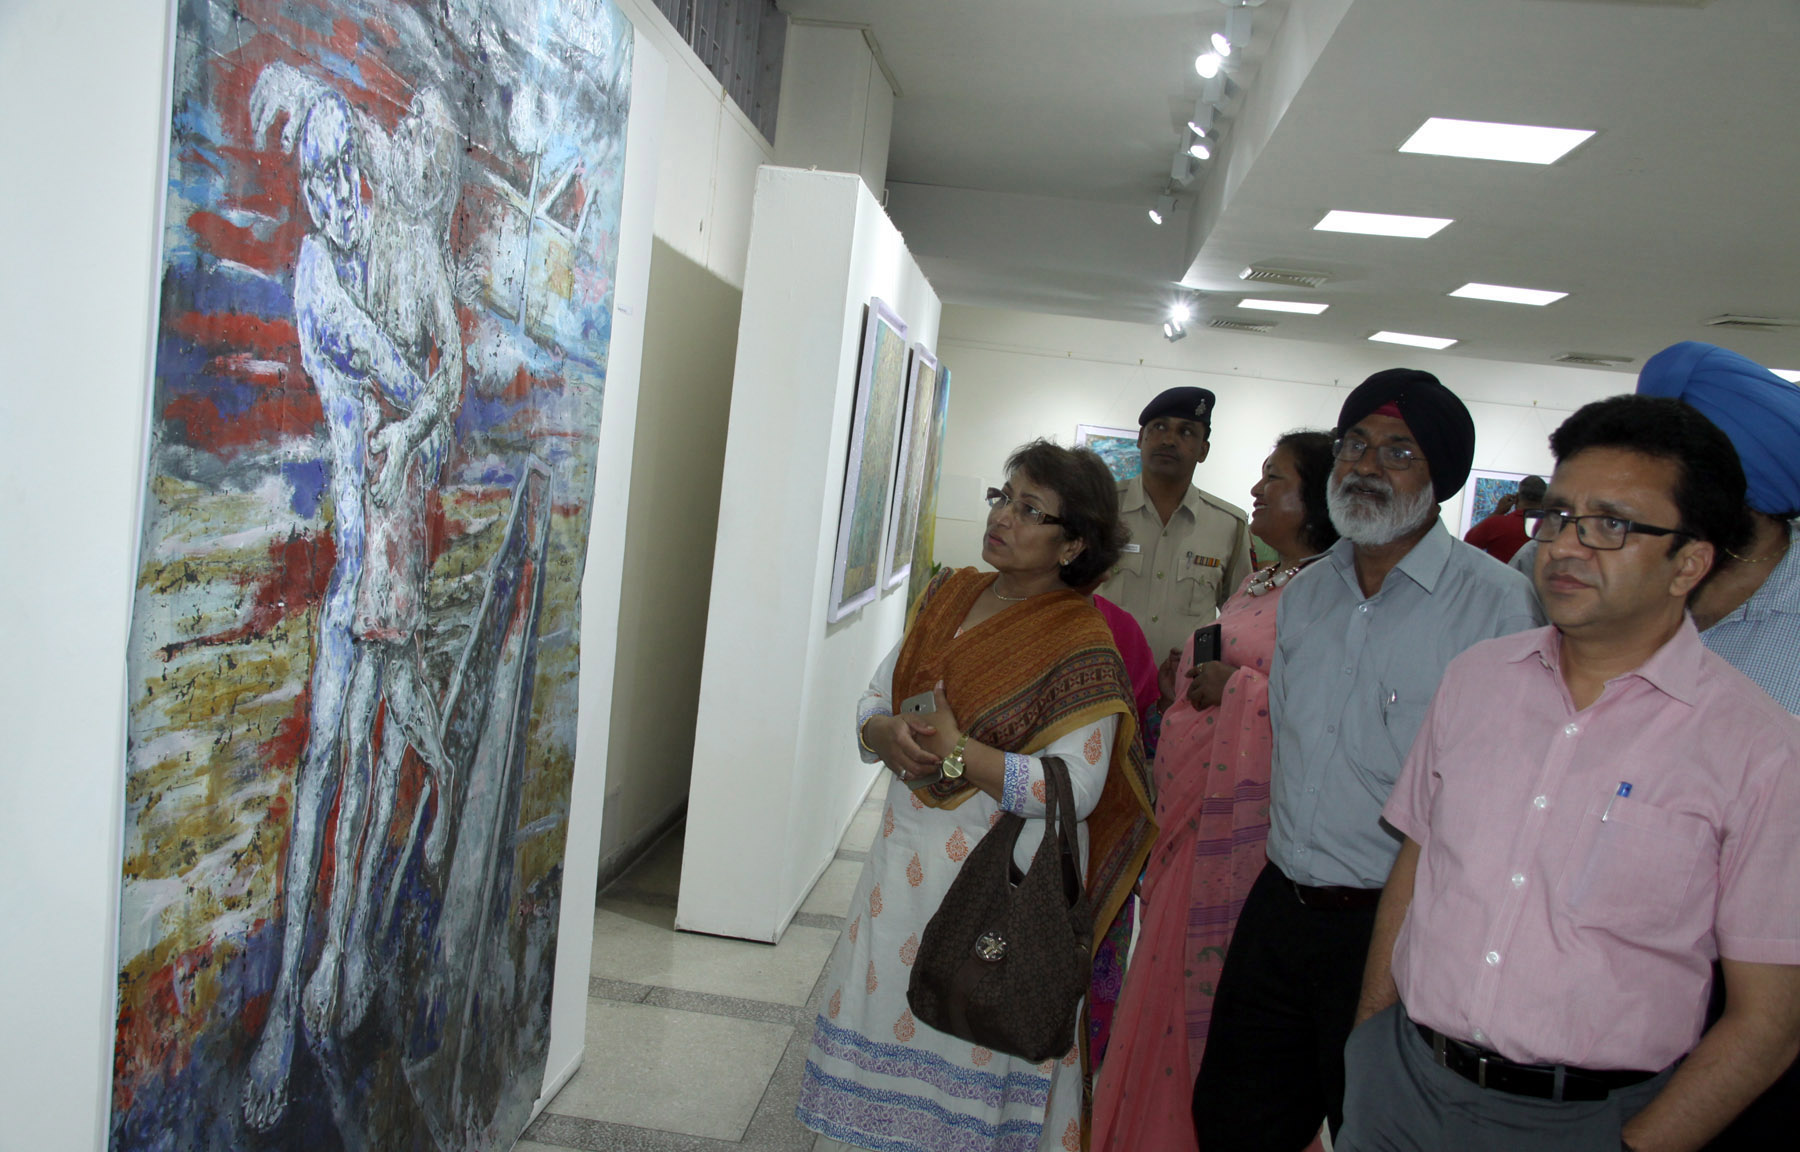 UT Home Secretary, Mr. Anurag Agarwal taking a round of the Exhibition of Paintings by Jagdeep Singh Garcha at Punjab Kala Bhawan, Sector-16, Chandigarh on Friday, April 29, 2016.